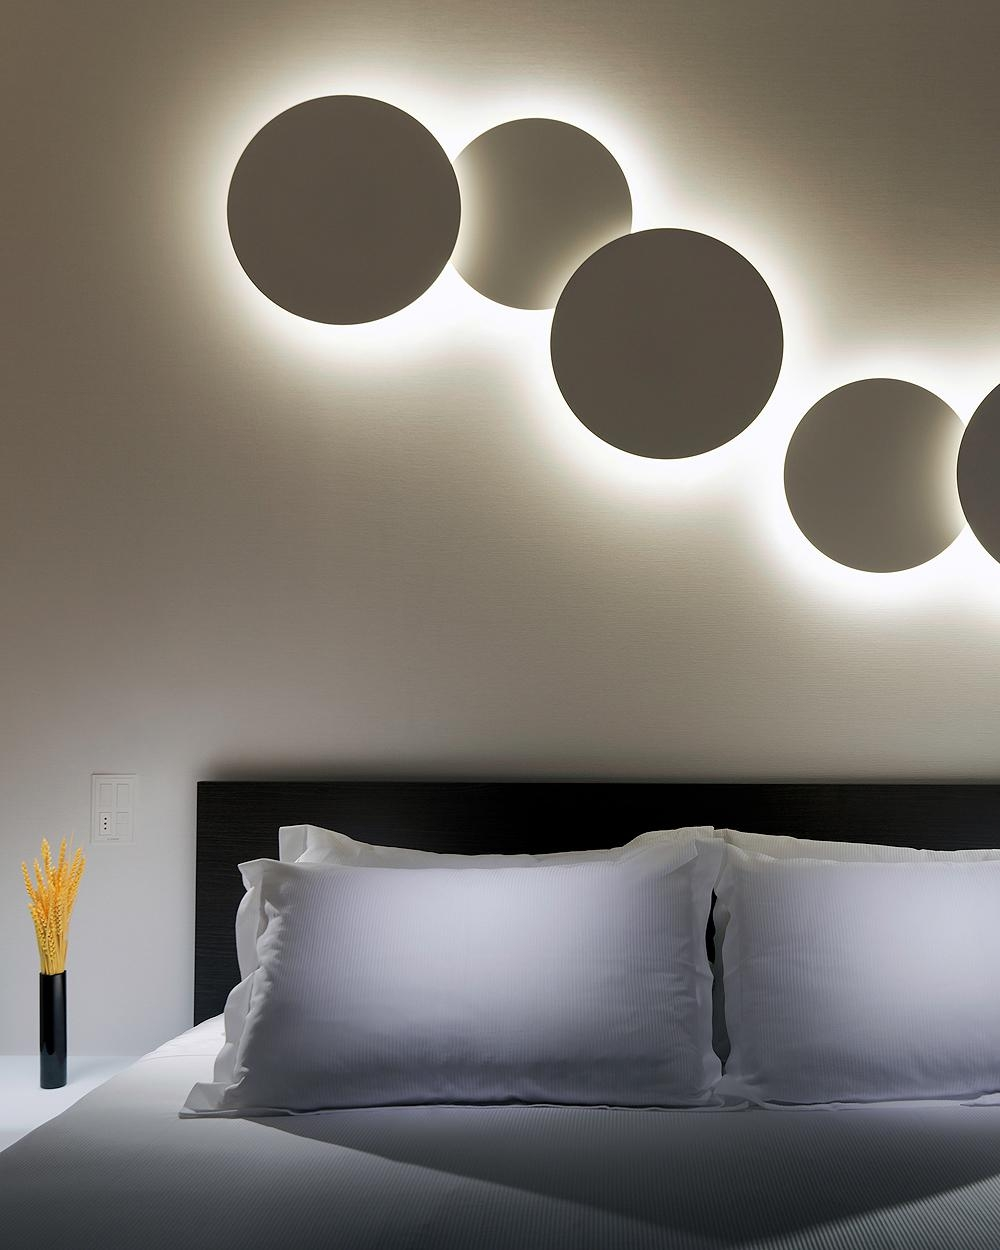 Puck 5468 Wall Art Quadruple Lightvibia | Interior Deluxe In Wall Art Lighting (View 14 of 20)